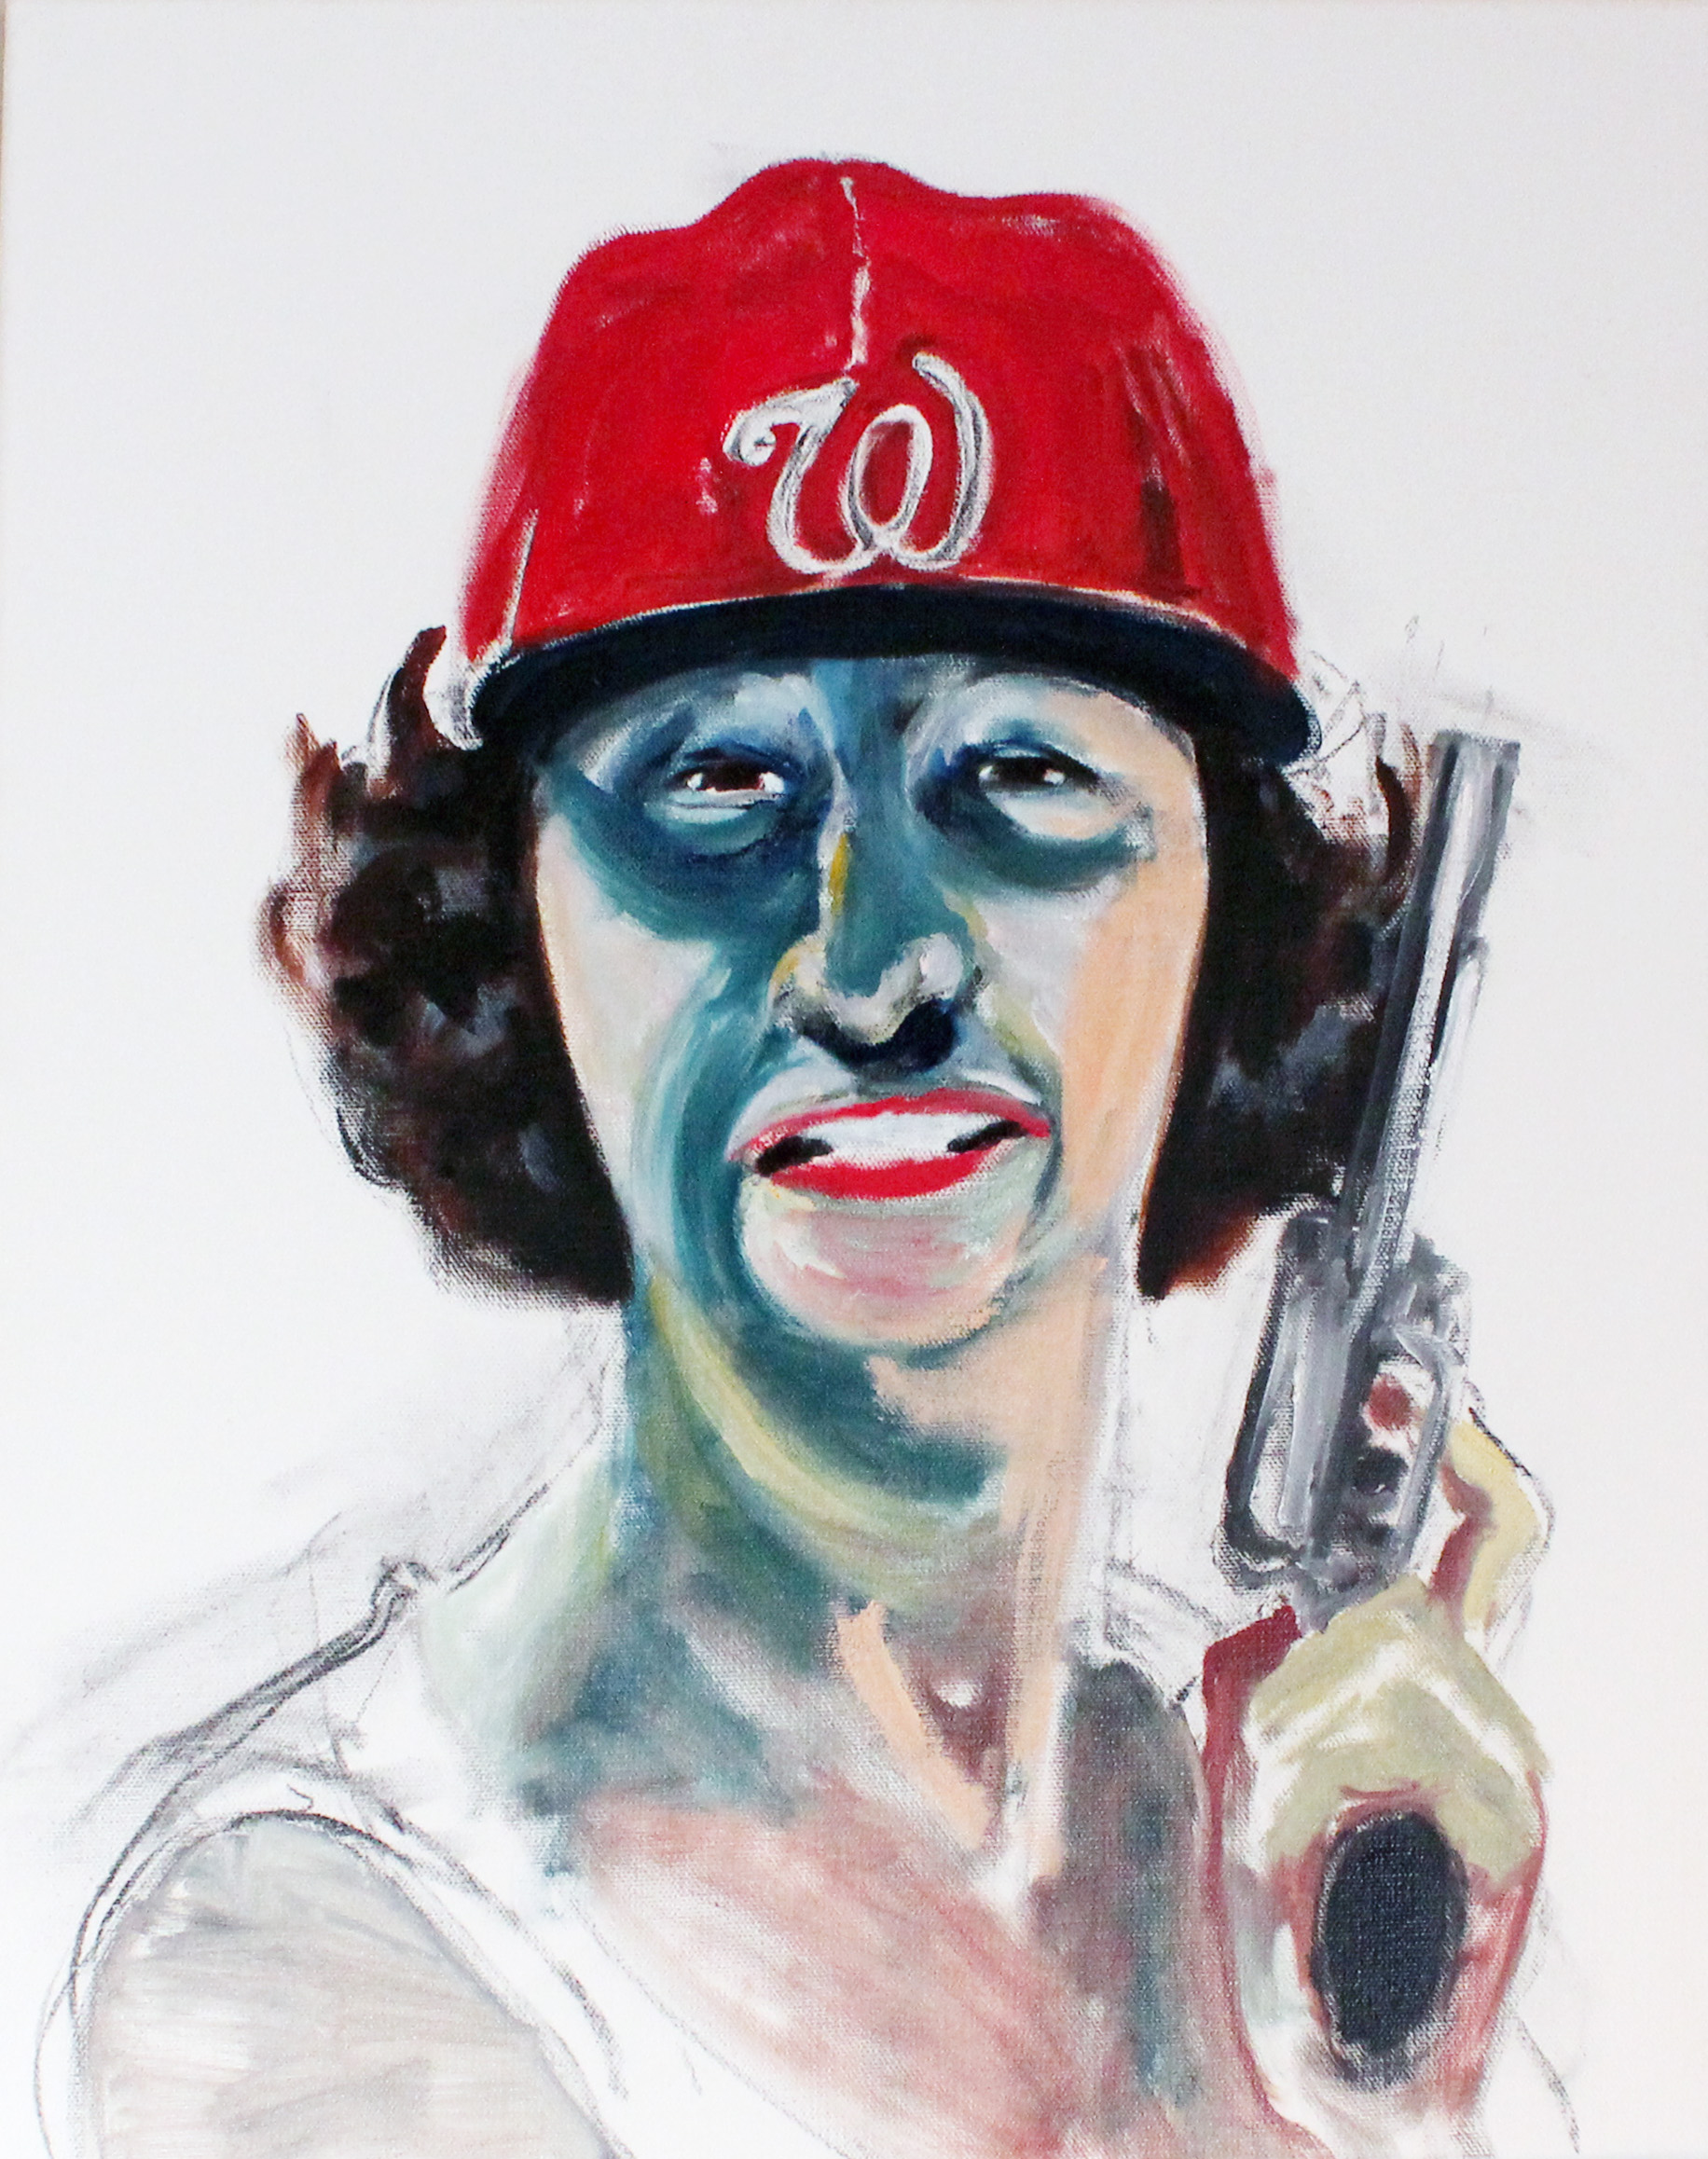 Self as Lady Bird with Nats Cap by Laura Elkins / Oil on canvas, 20 x 16 inches. 2012.